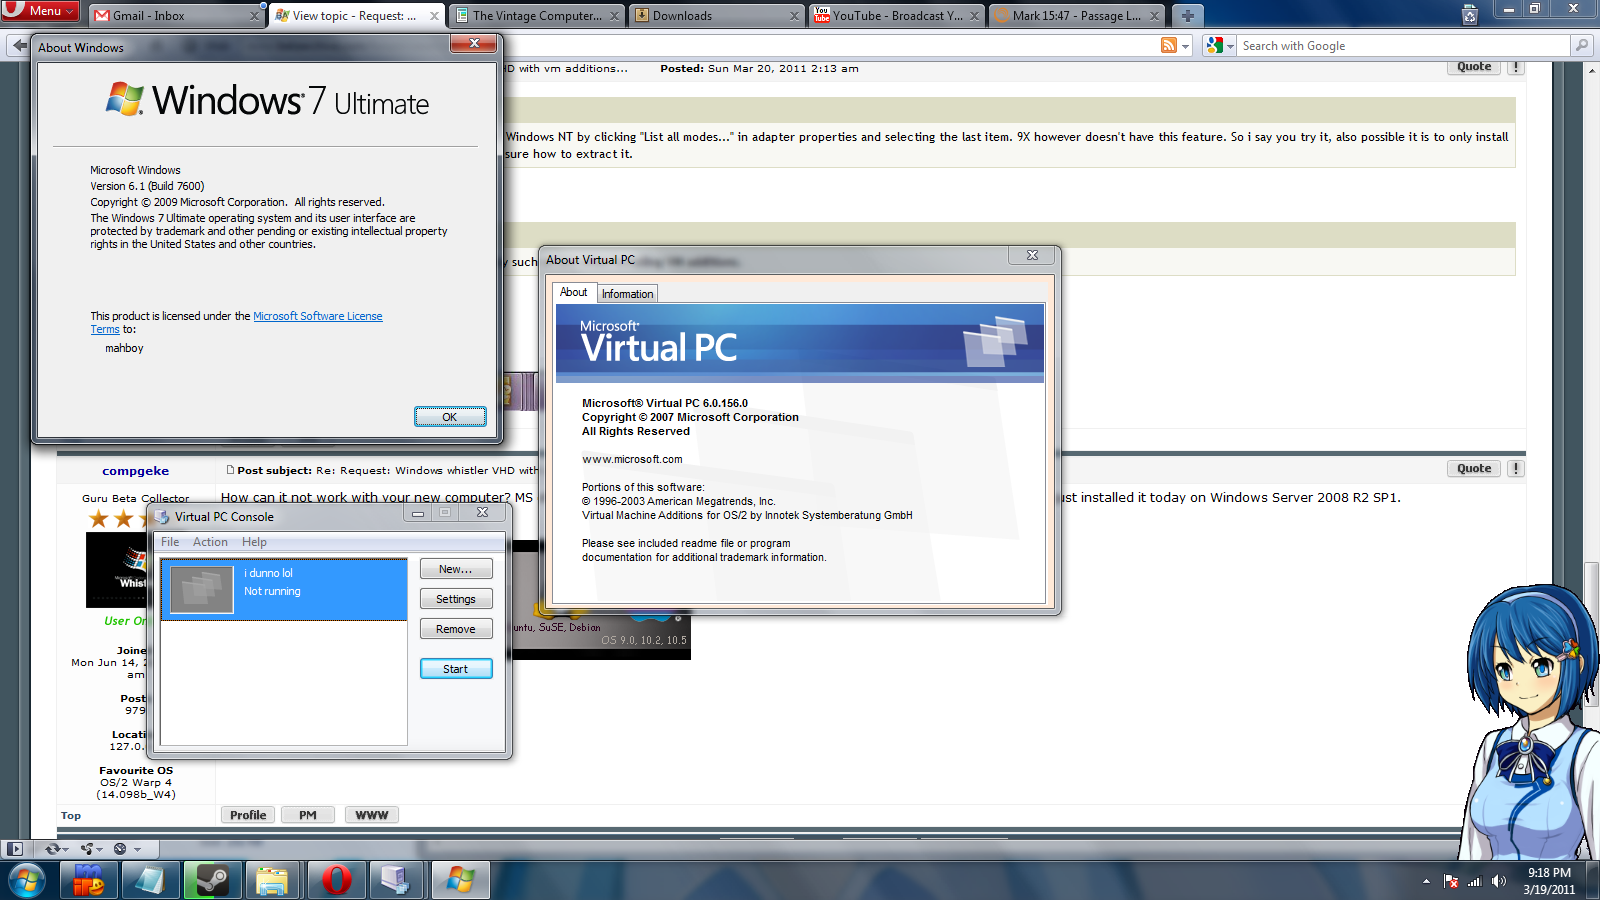 View topic - Request: Windows whistler VHD with vm additions